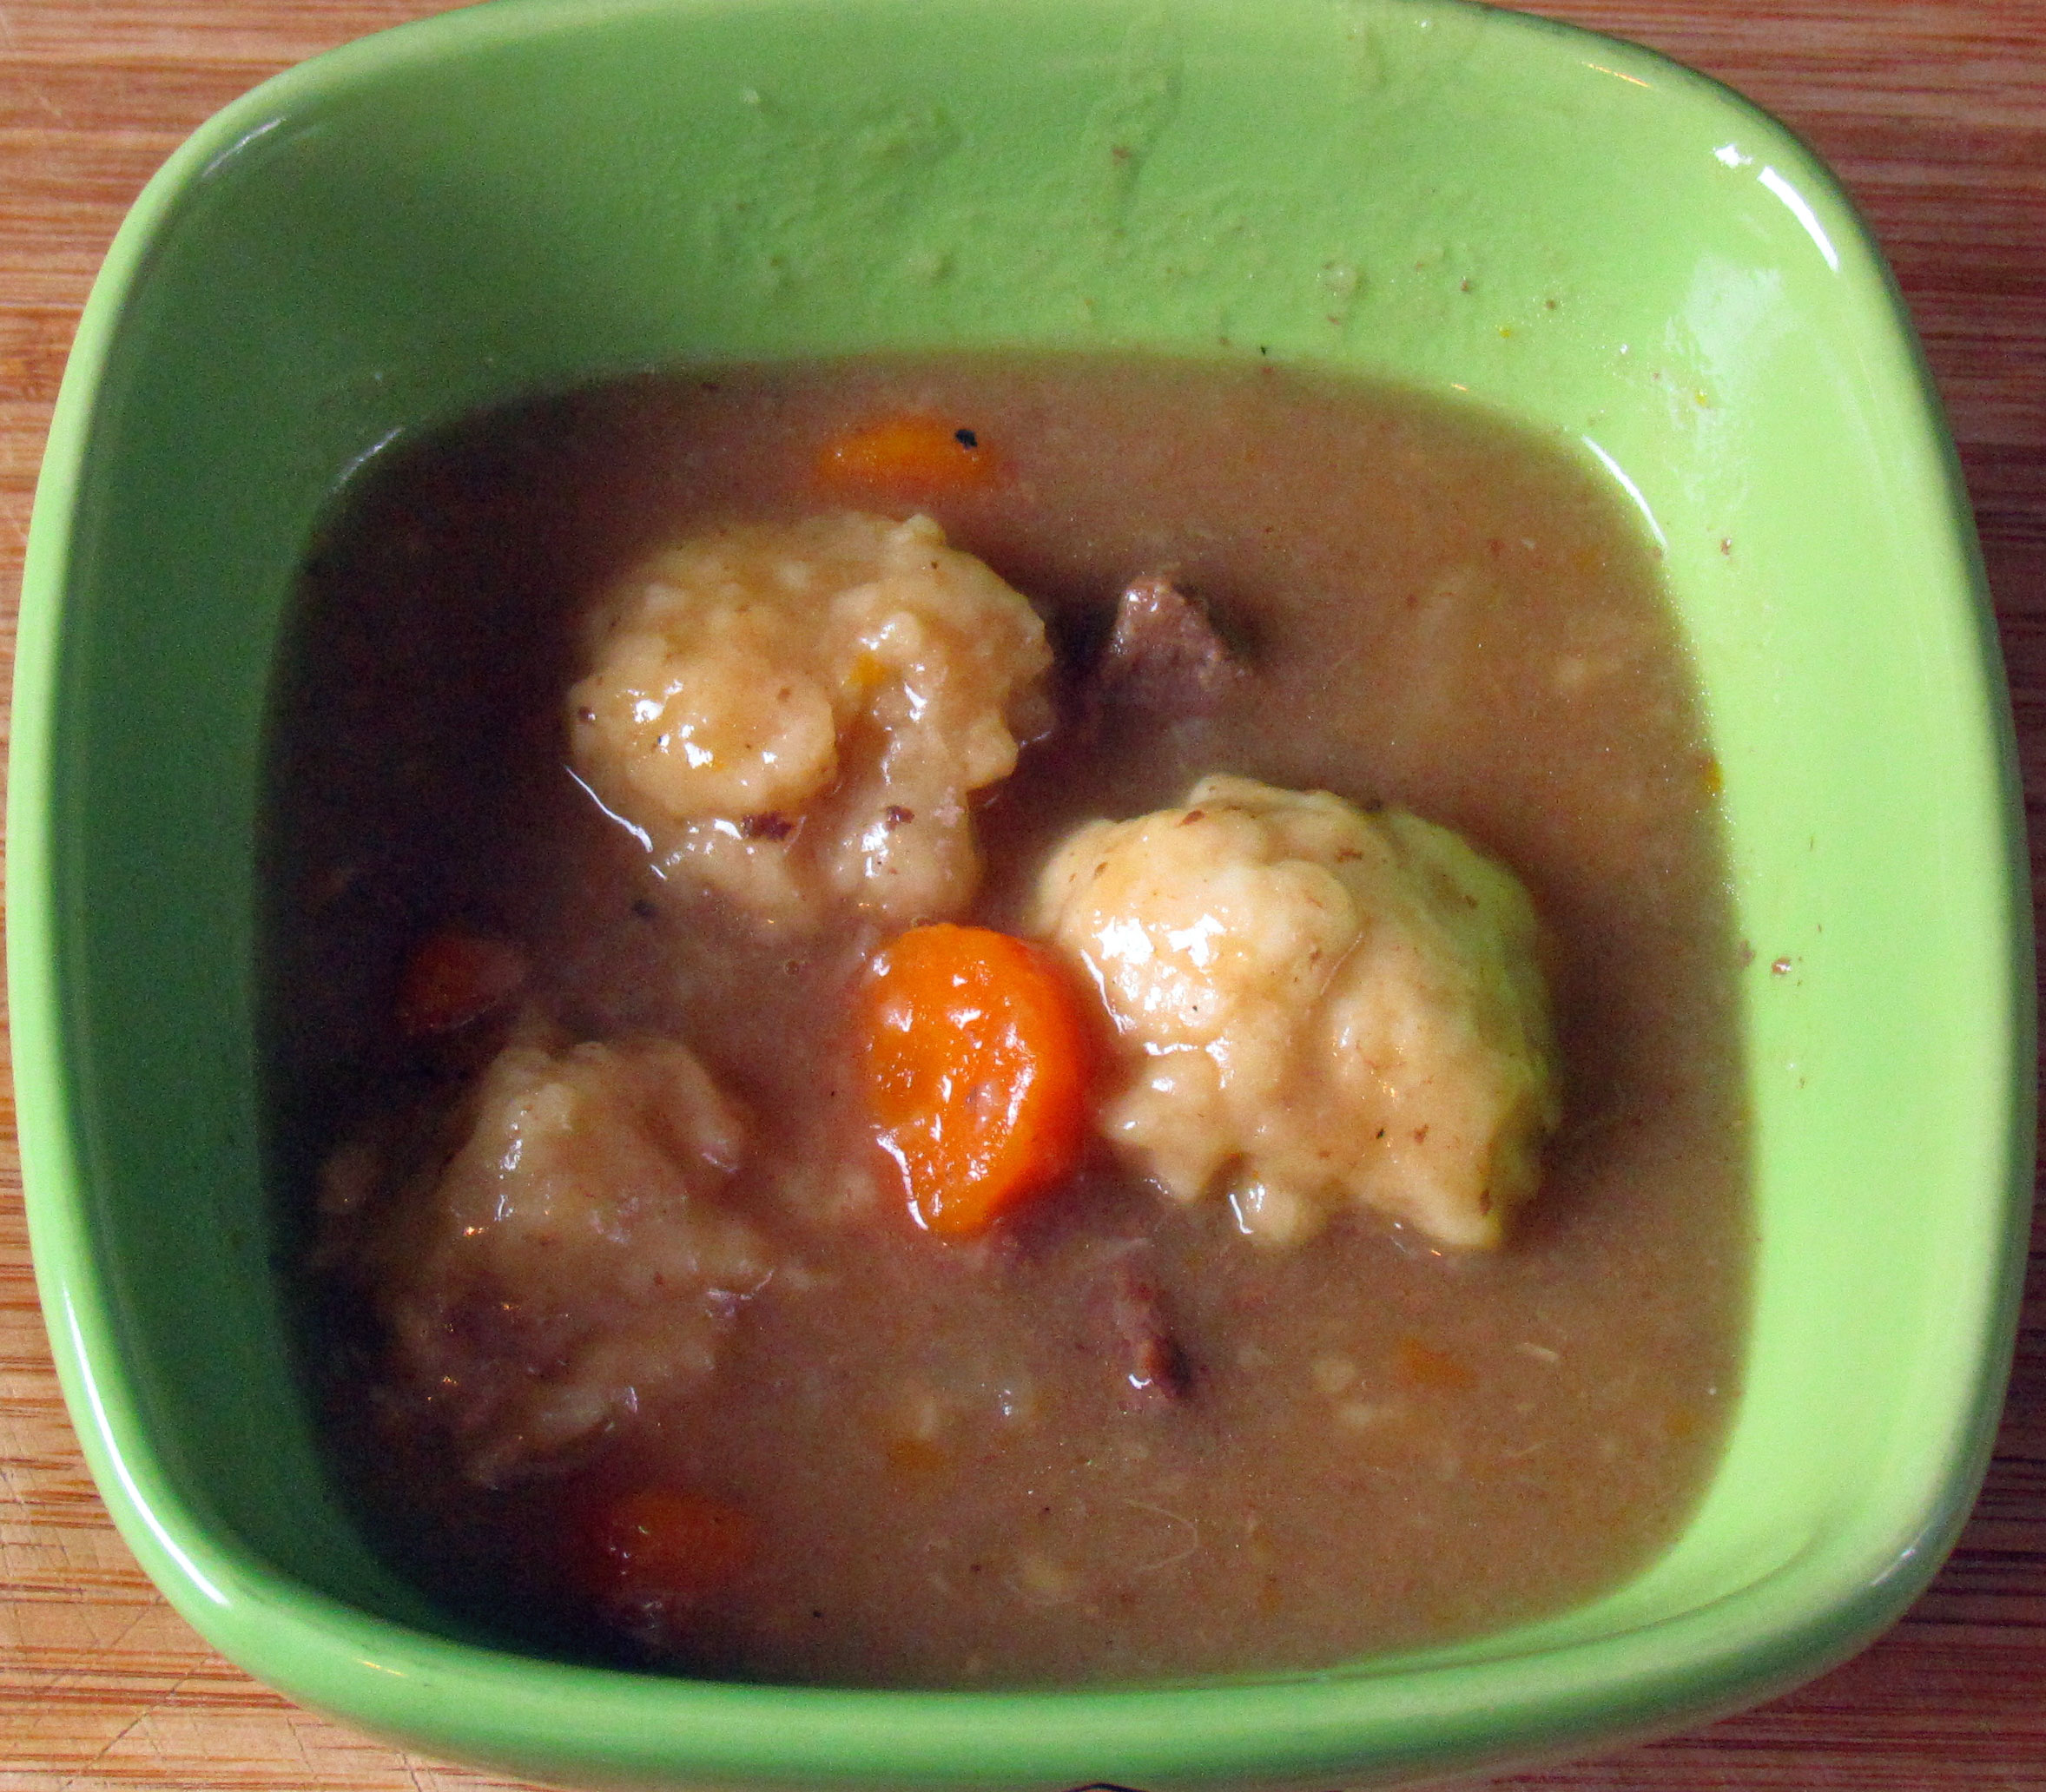 Basic beef stew with dumplings